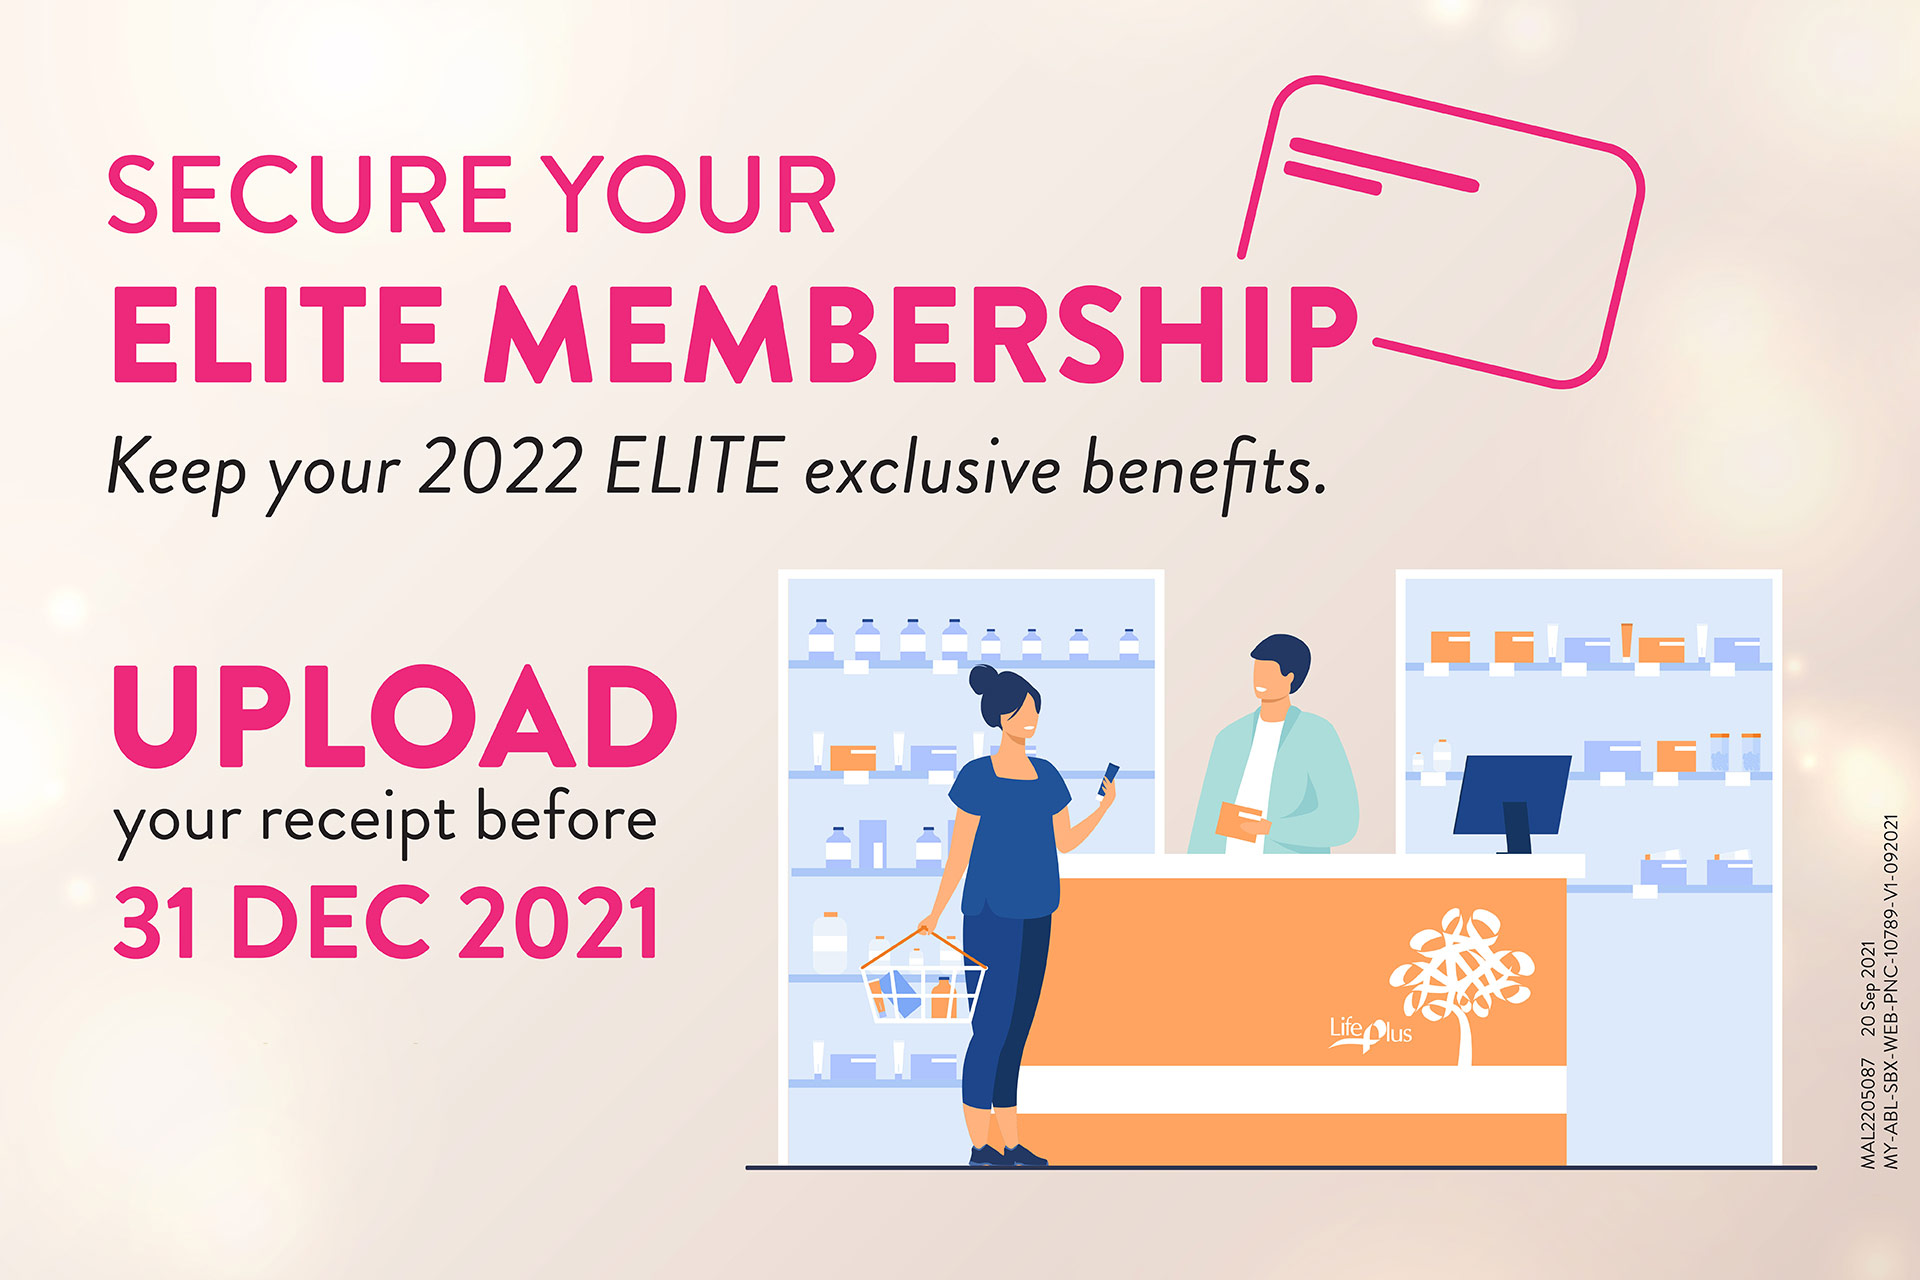 Secure Your Elite Membership For Year 2022